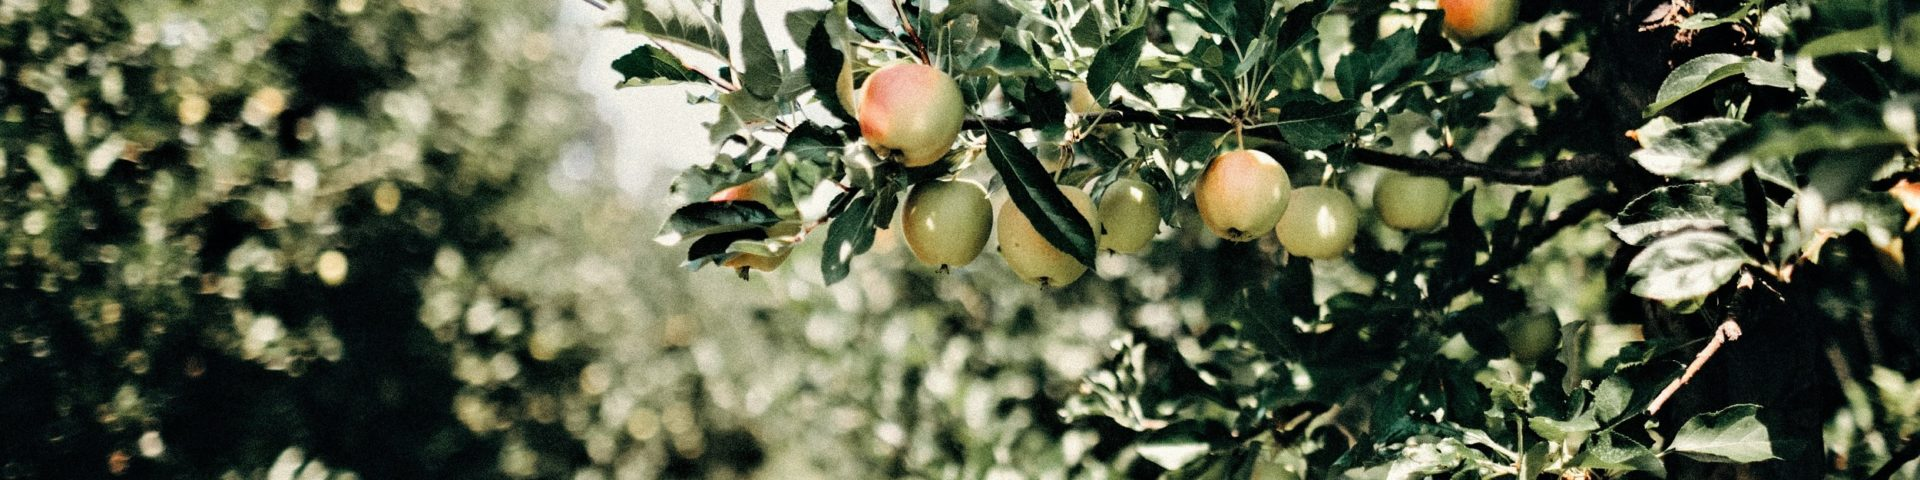 apple tree branches with apples